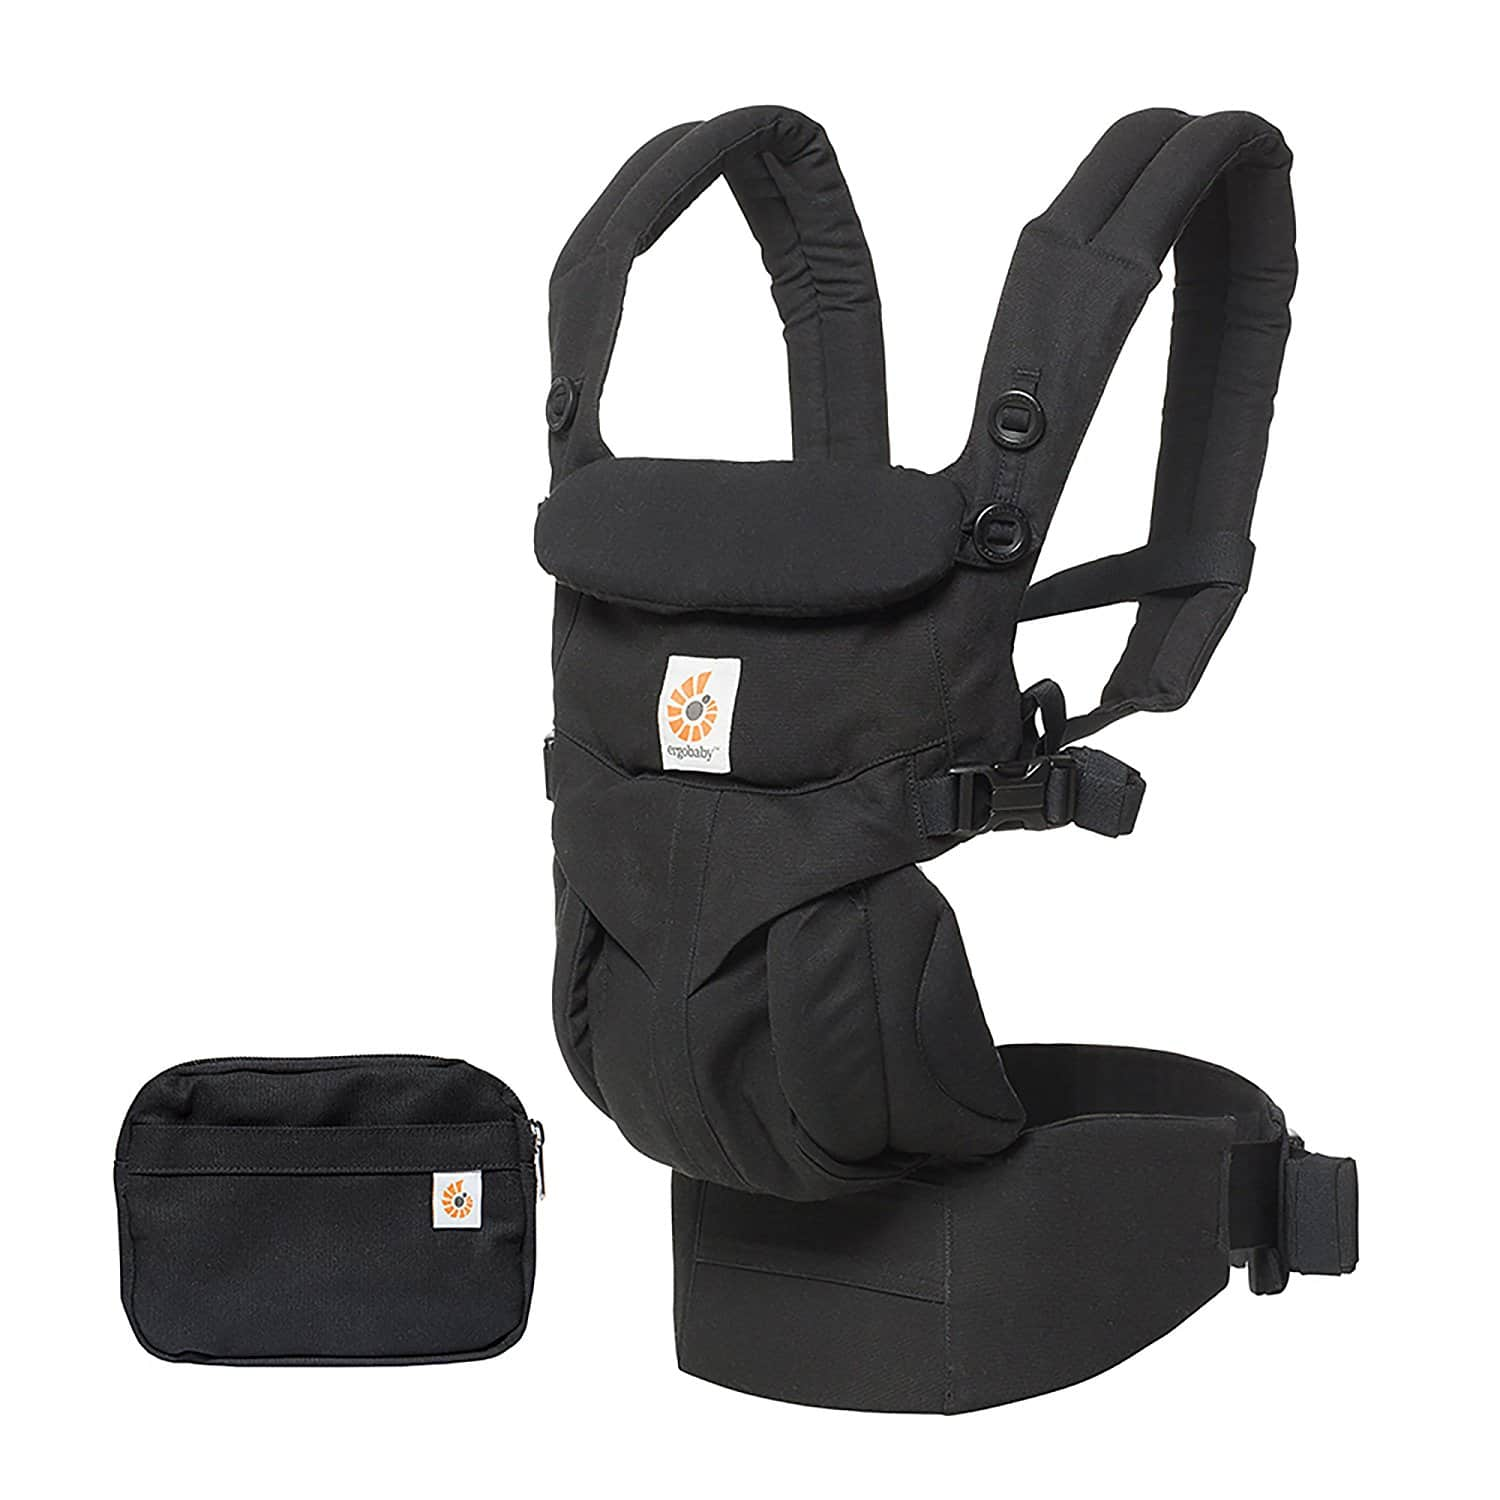 Ergobaby OMNI 360 All-in-One Ergonomic Baby Carrier (Black) - $126 + Free S&H